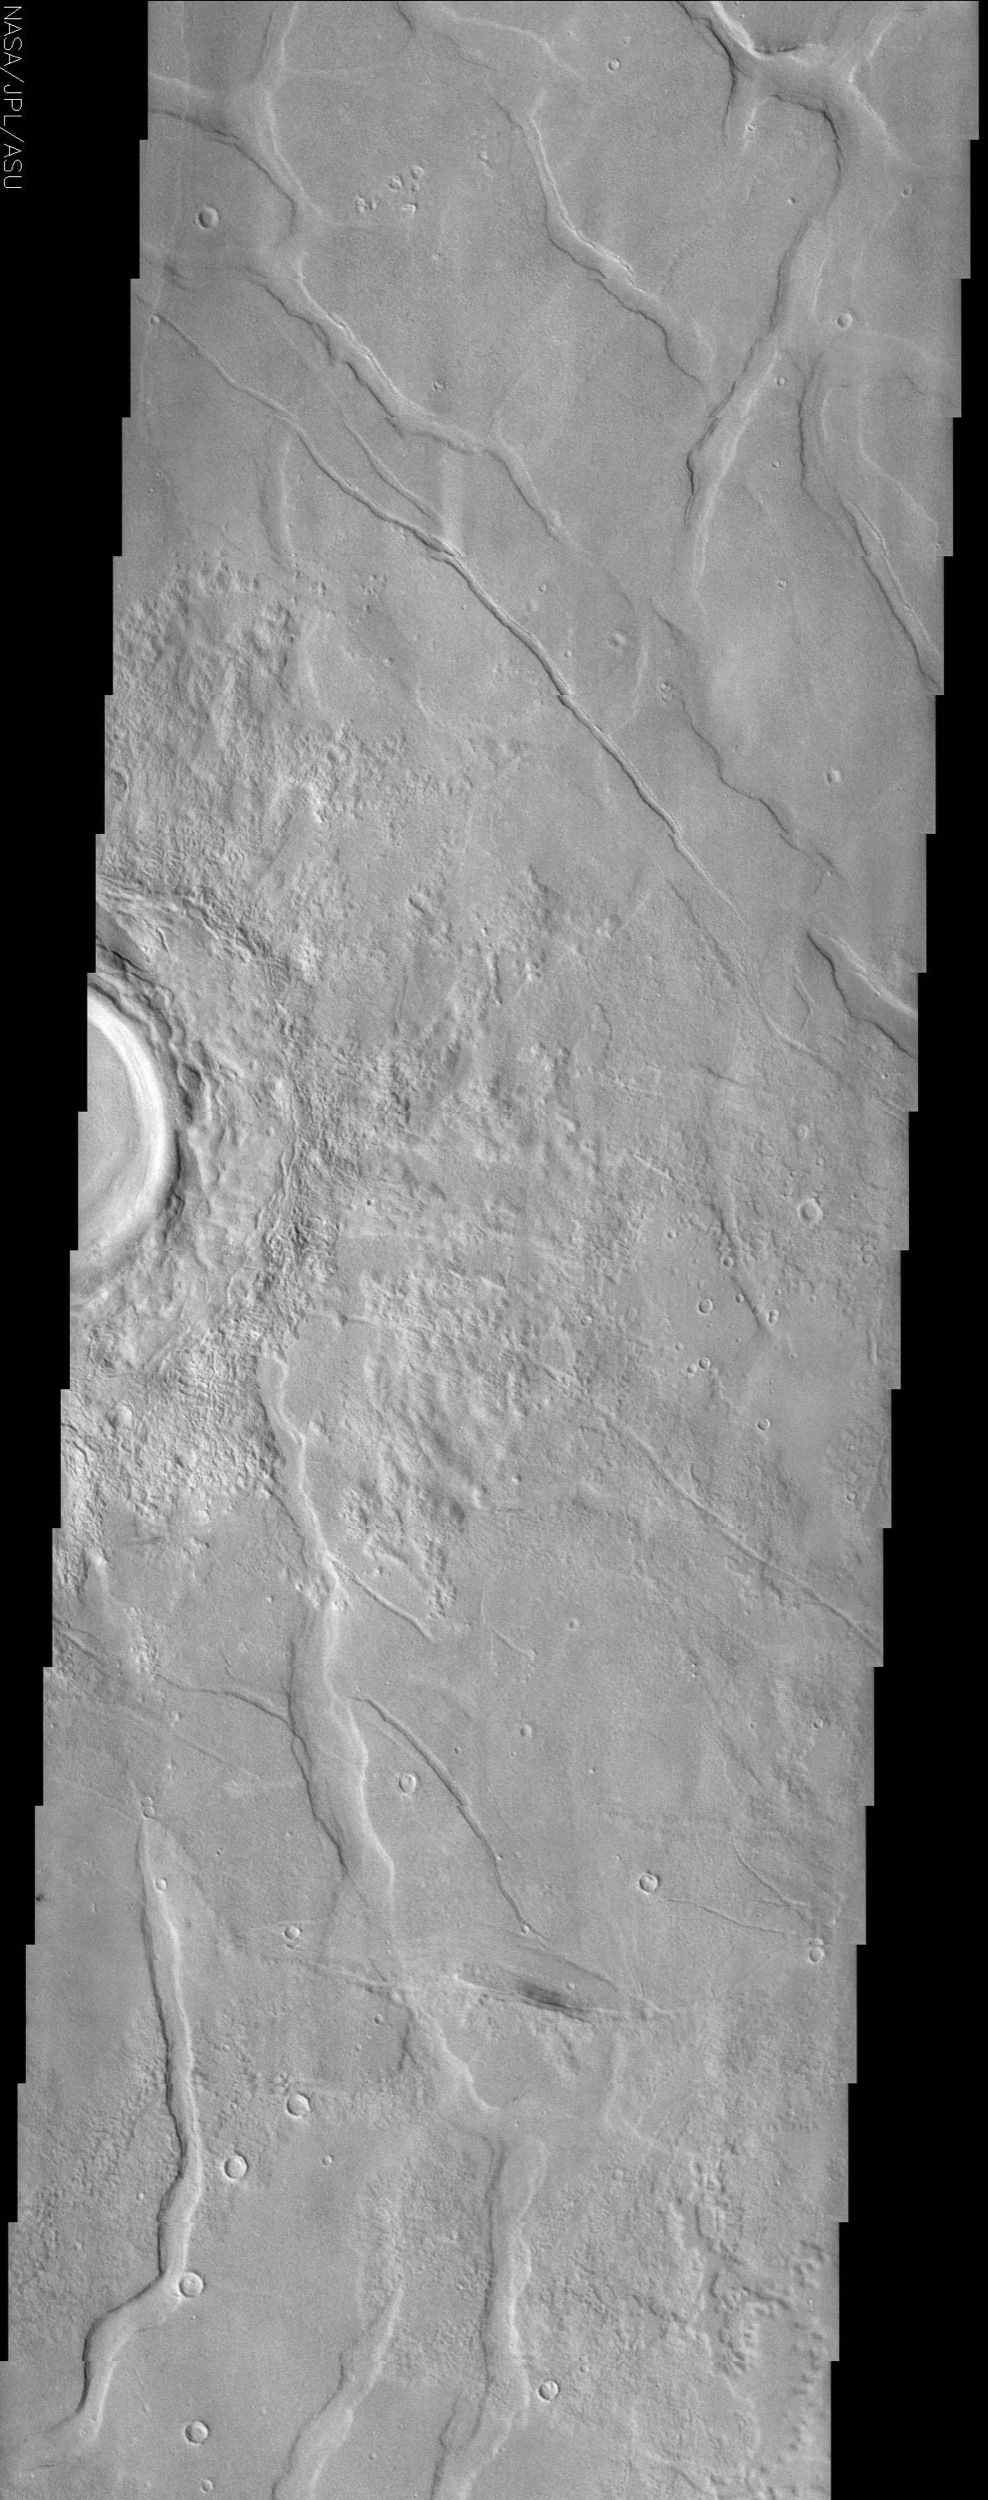 This image by NASA's Mars Odyssey spacecraft shows Utopia Planitia, a large plain in the northern hemisphere of Mars. It is believed that this basin is the result of a large impact.